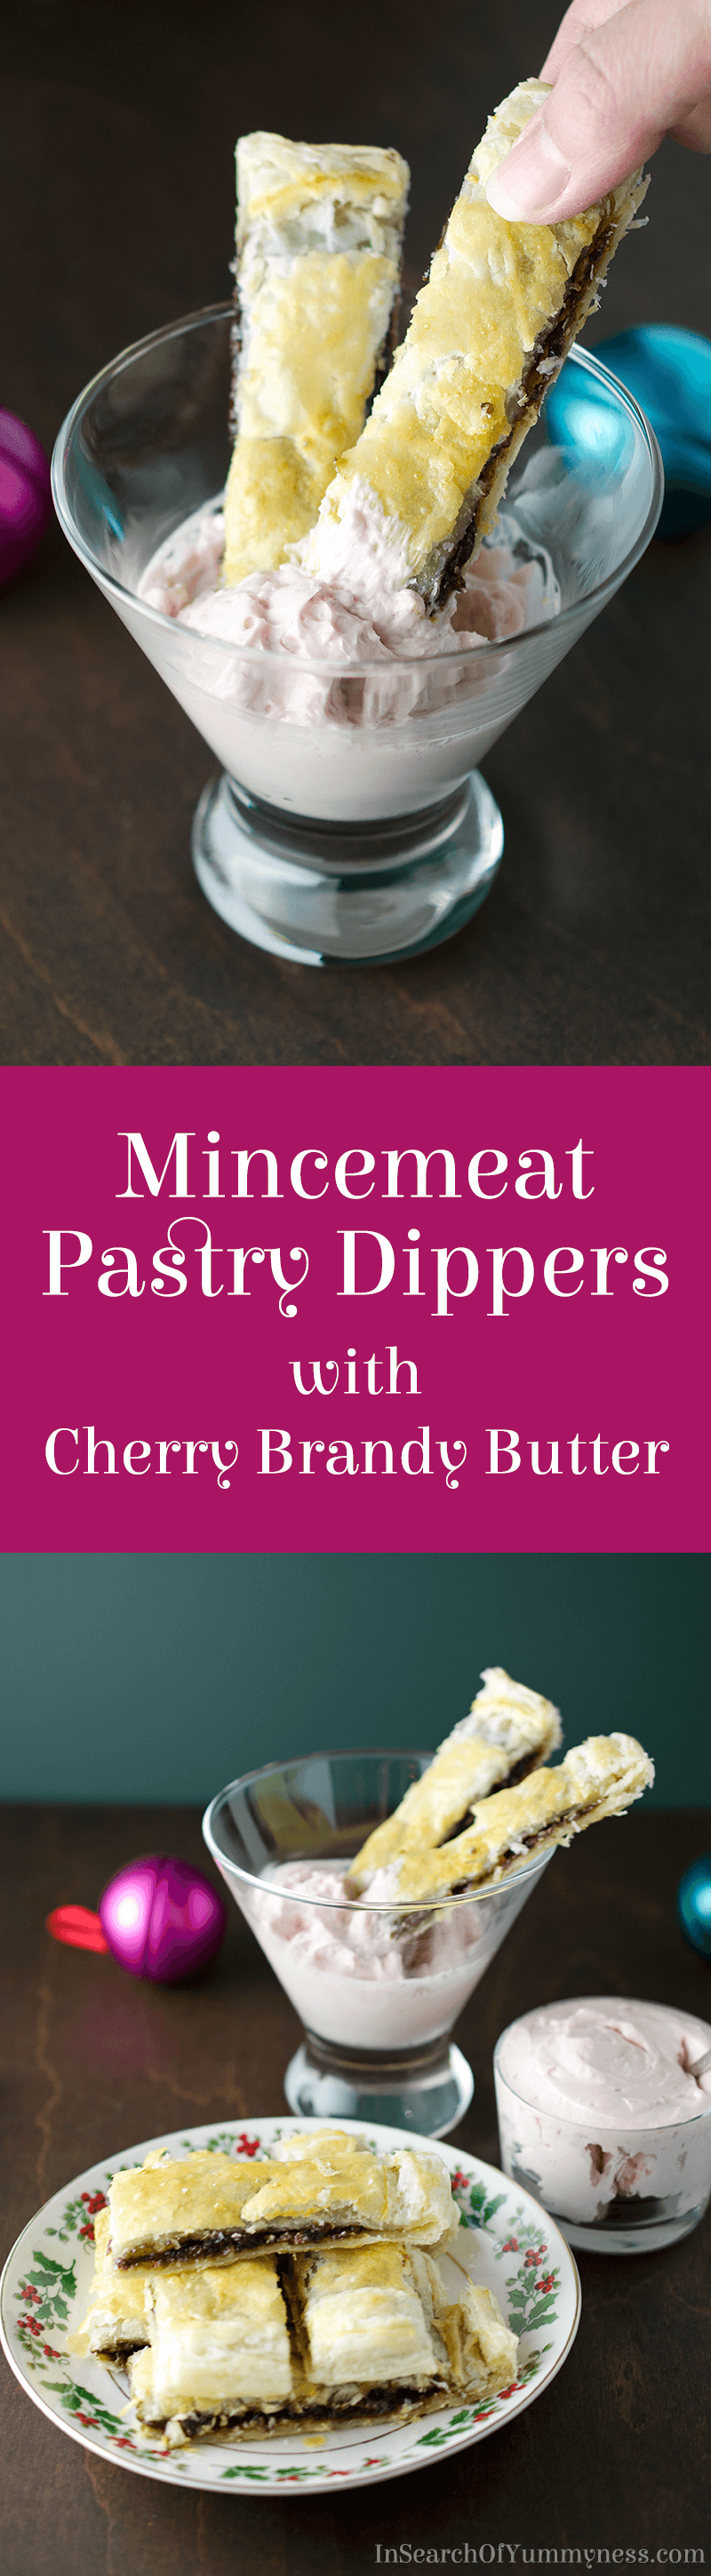 Do you love Mincemeat Pies? Then you're going to LOVE these Mincemeat Pastry Dippers! They are served with a creamy Cherry Brandy Butter, and are a great treat to nibble on while wrapping presents!